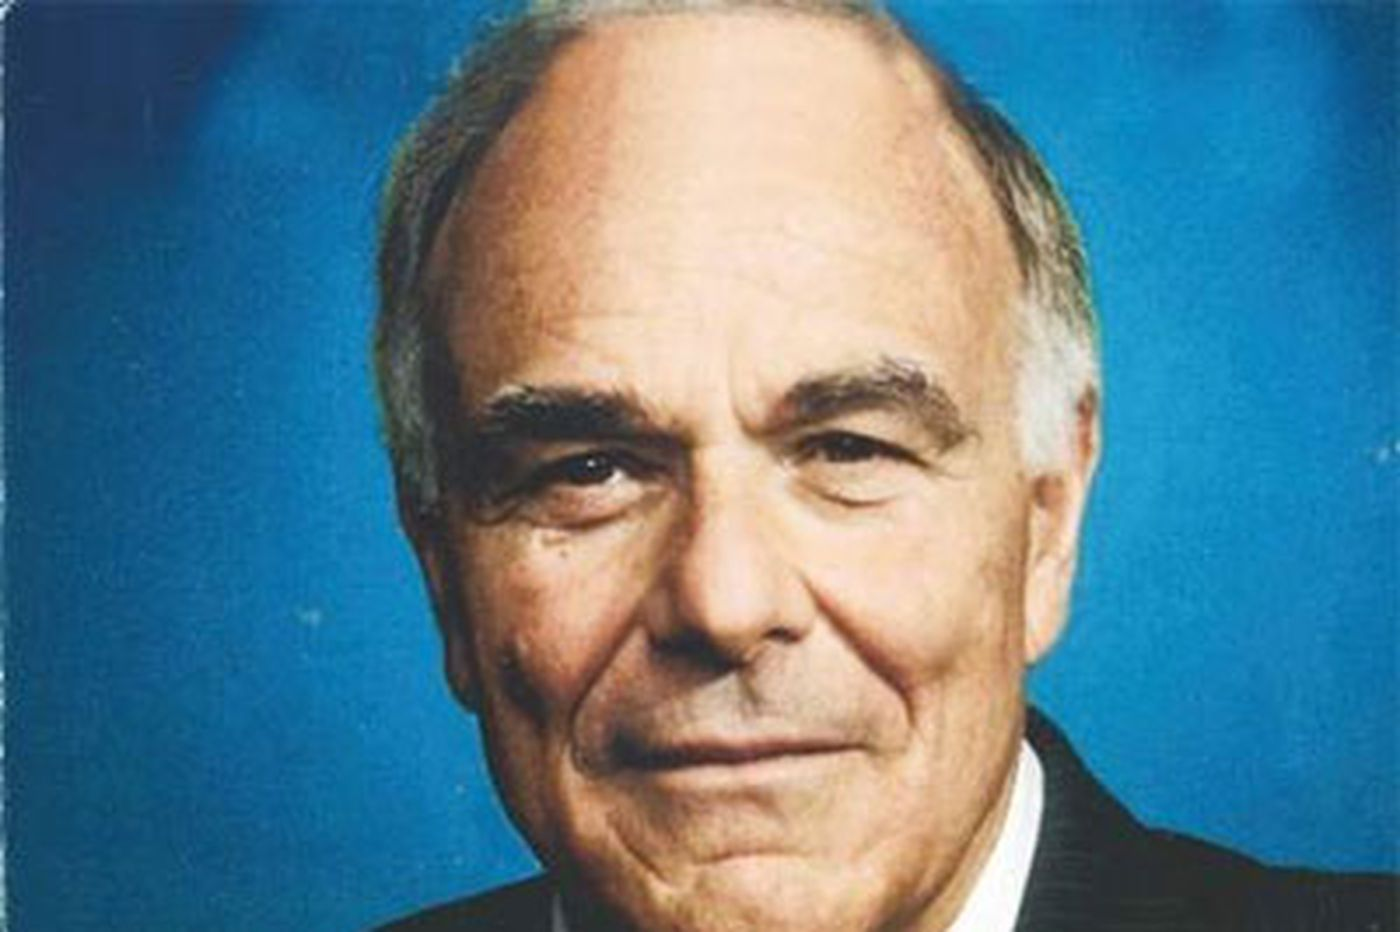 Rendell on wusses, Hillary and a donkey named Swifty